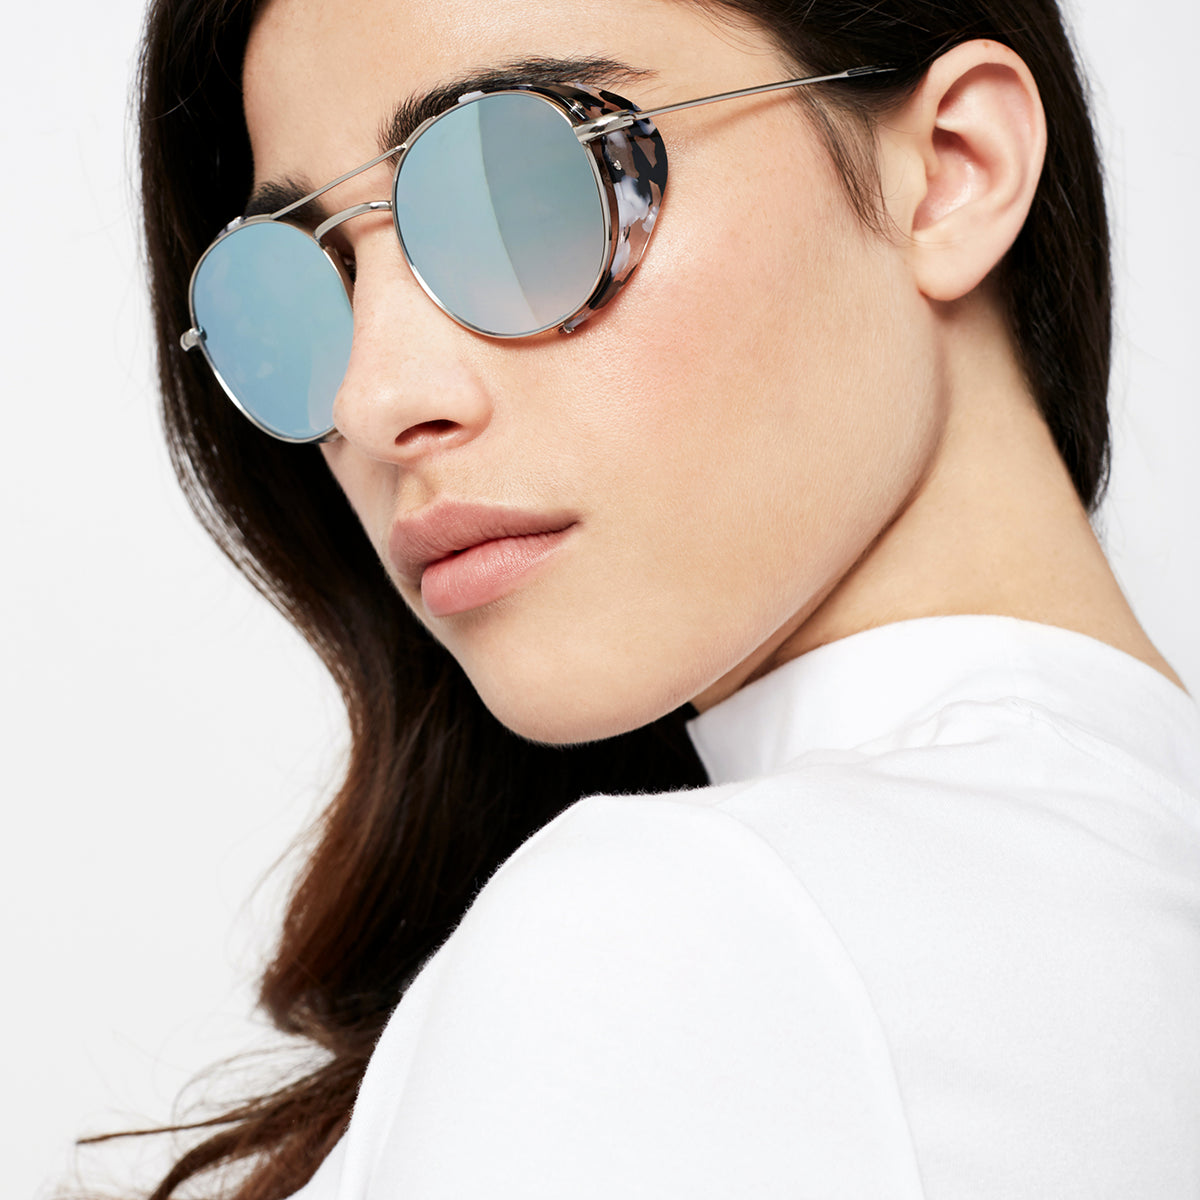 ORLEANS BLINKER | Titanium + Interstellar - A seamless combination of premium metal and acetate side blinders for a truly modern pair of Sunglasses. | Womens